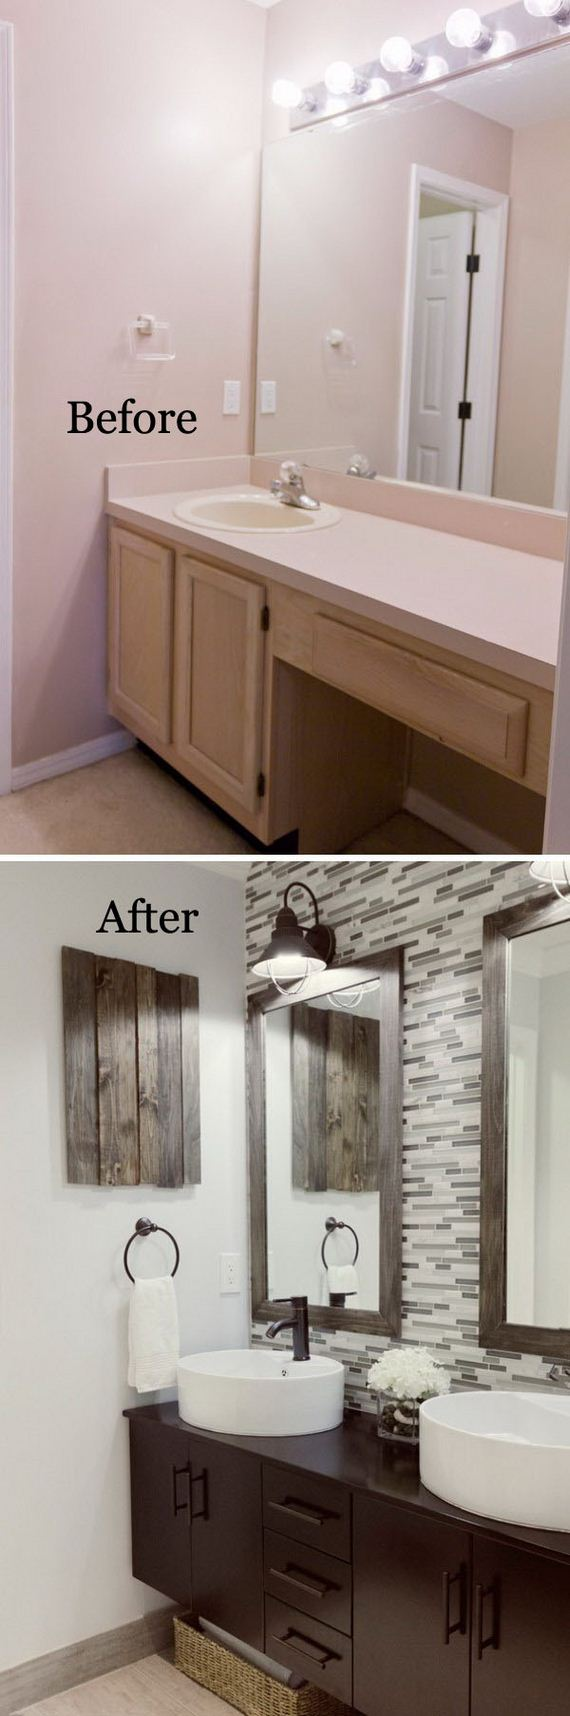 15-awesome-bathroom-makeovers